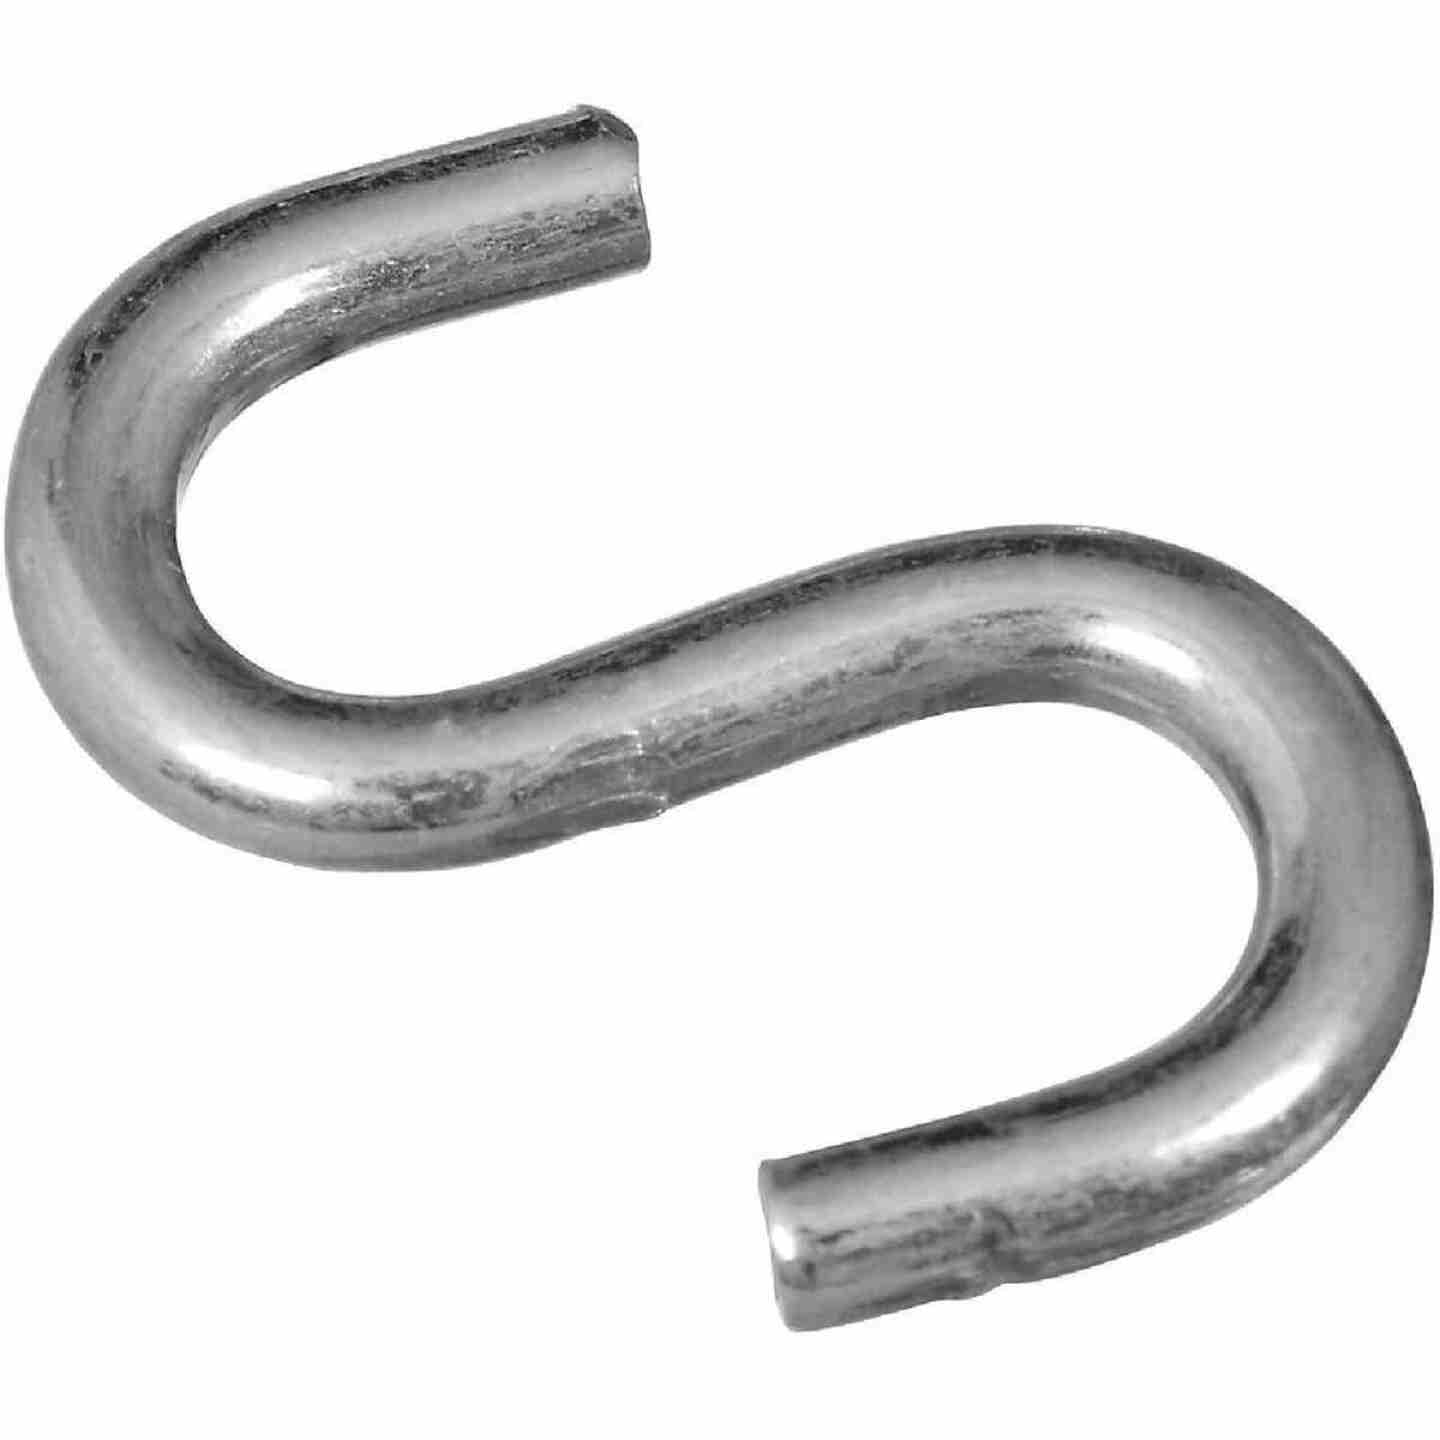 National 1-1/2 In. Zinc Heavy Open S Hook (4 Ct.) Image 1